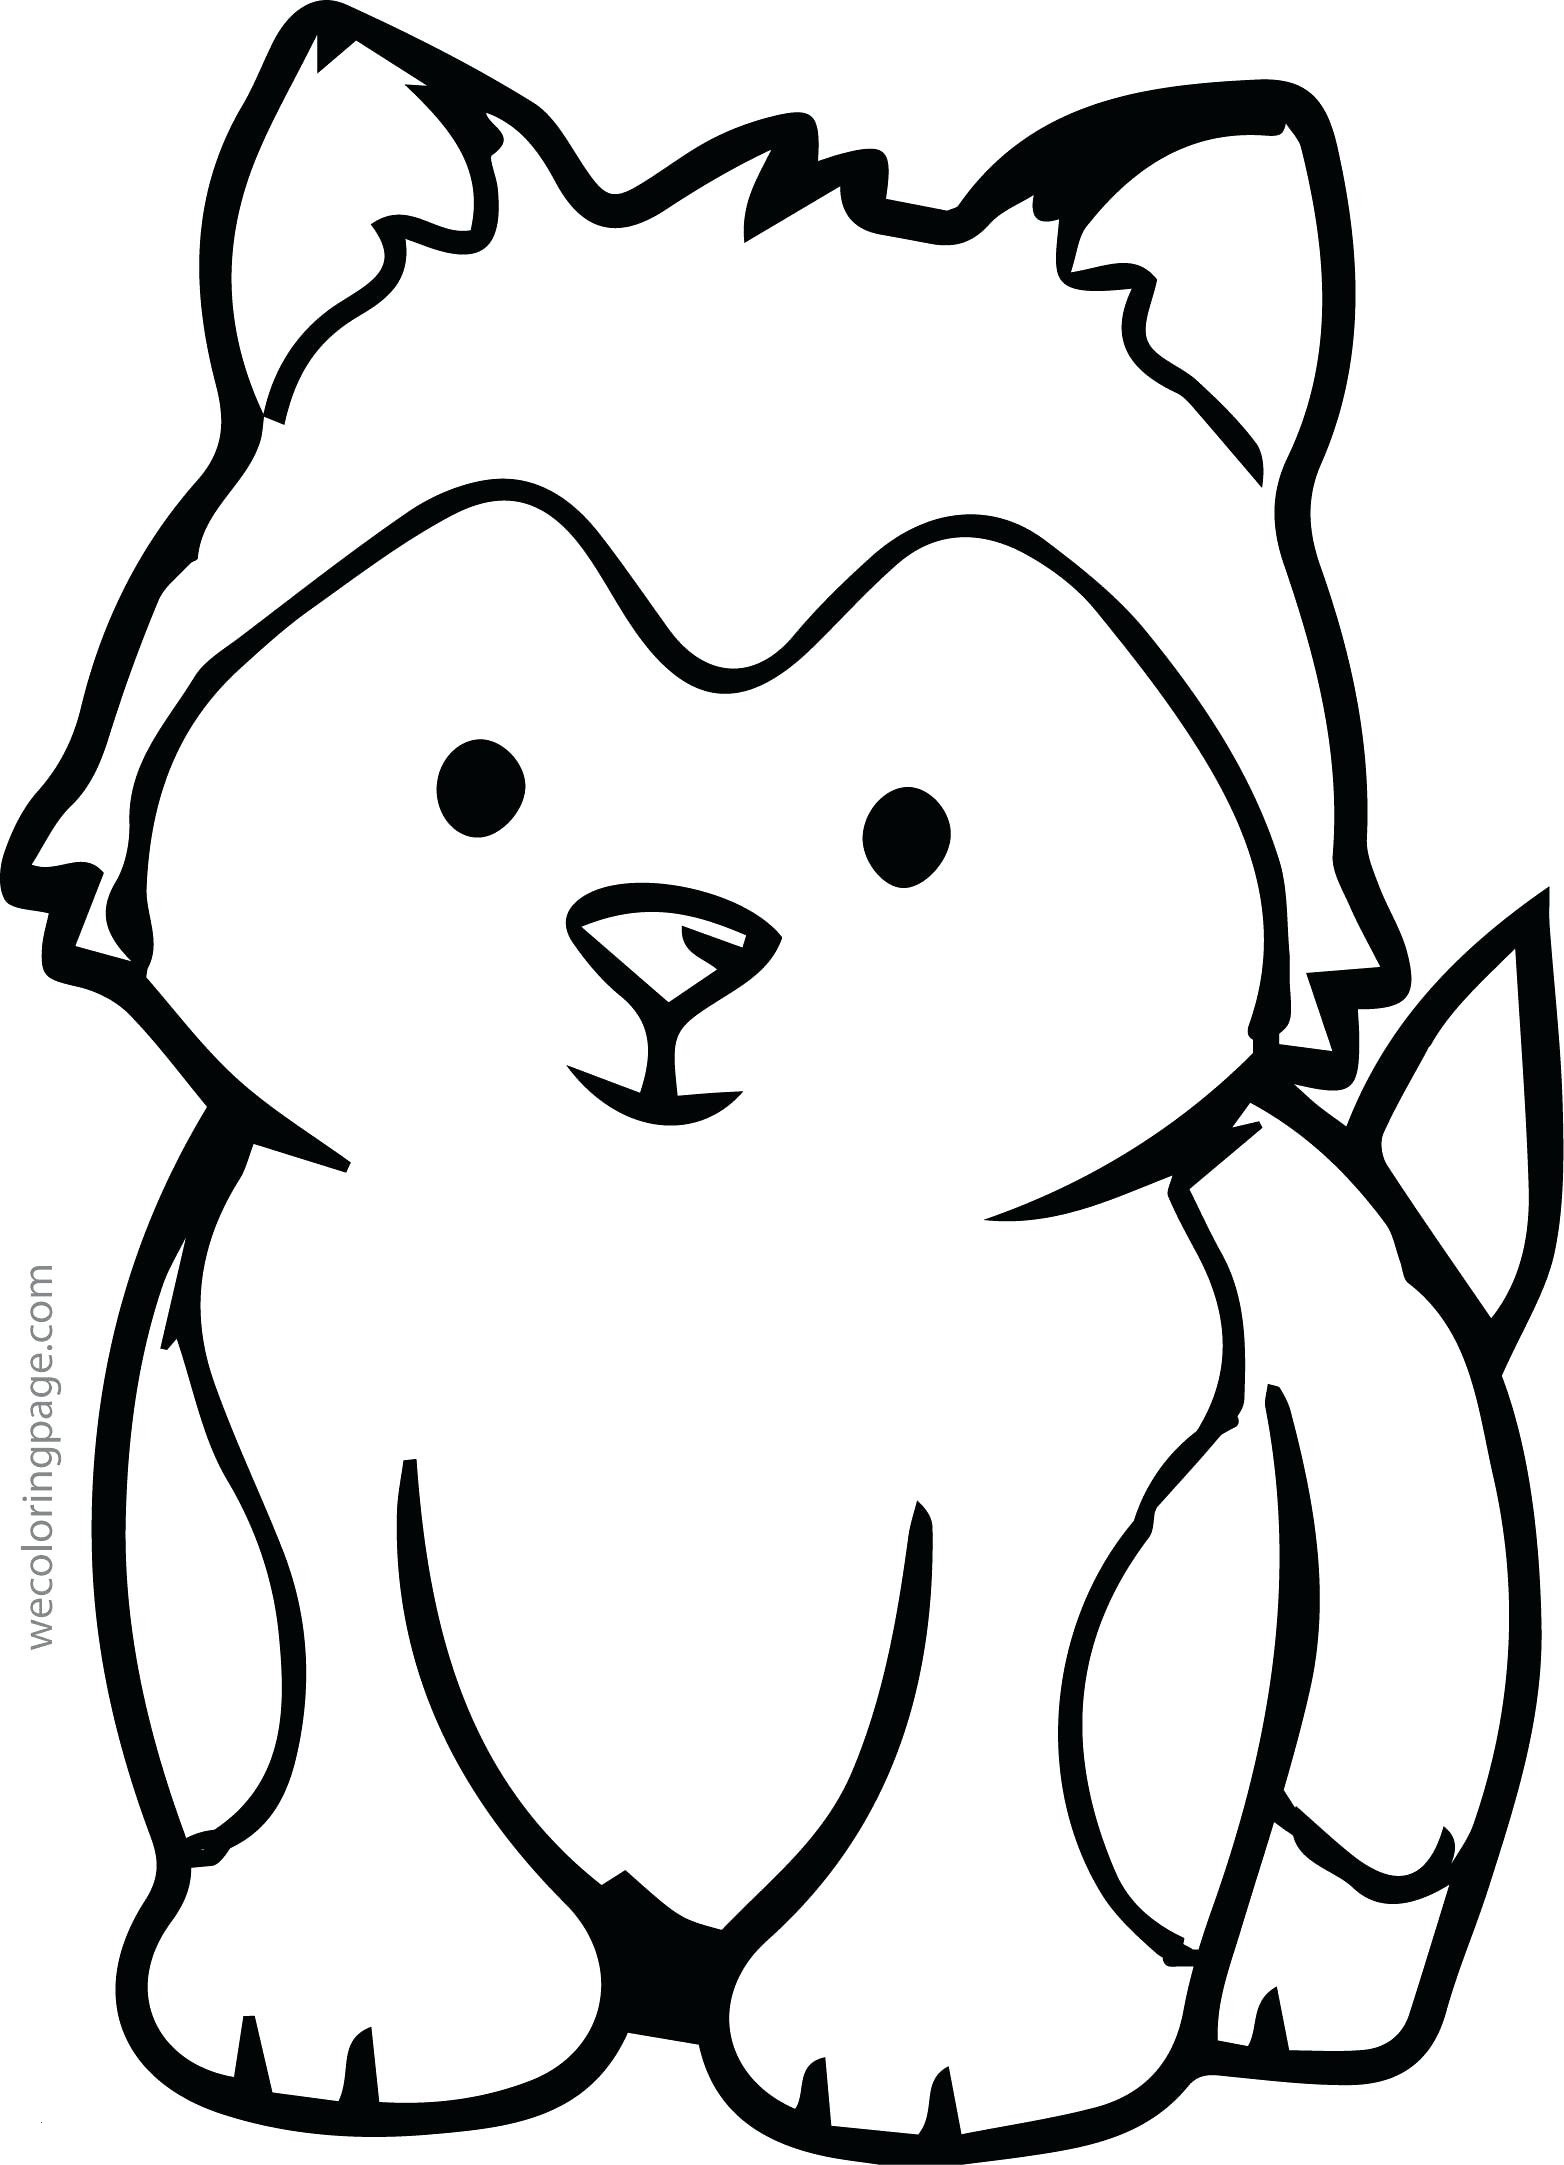 free-coloring-pages-animals-of-free-coloring-pages-animals Free Coloring Pages Animals Animal